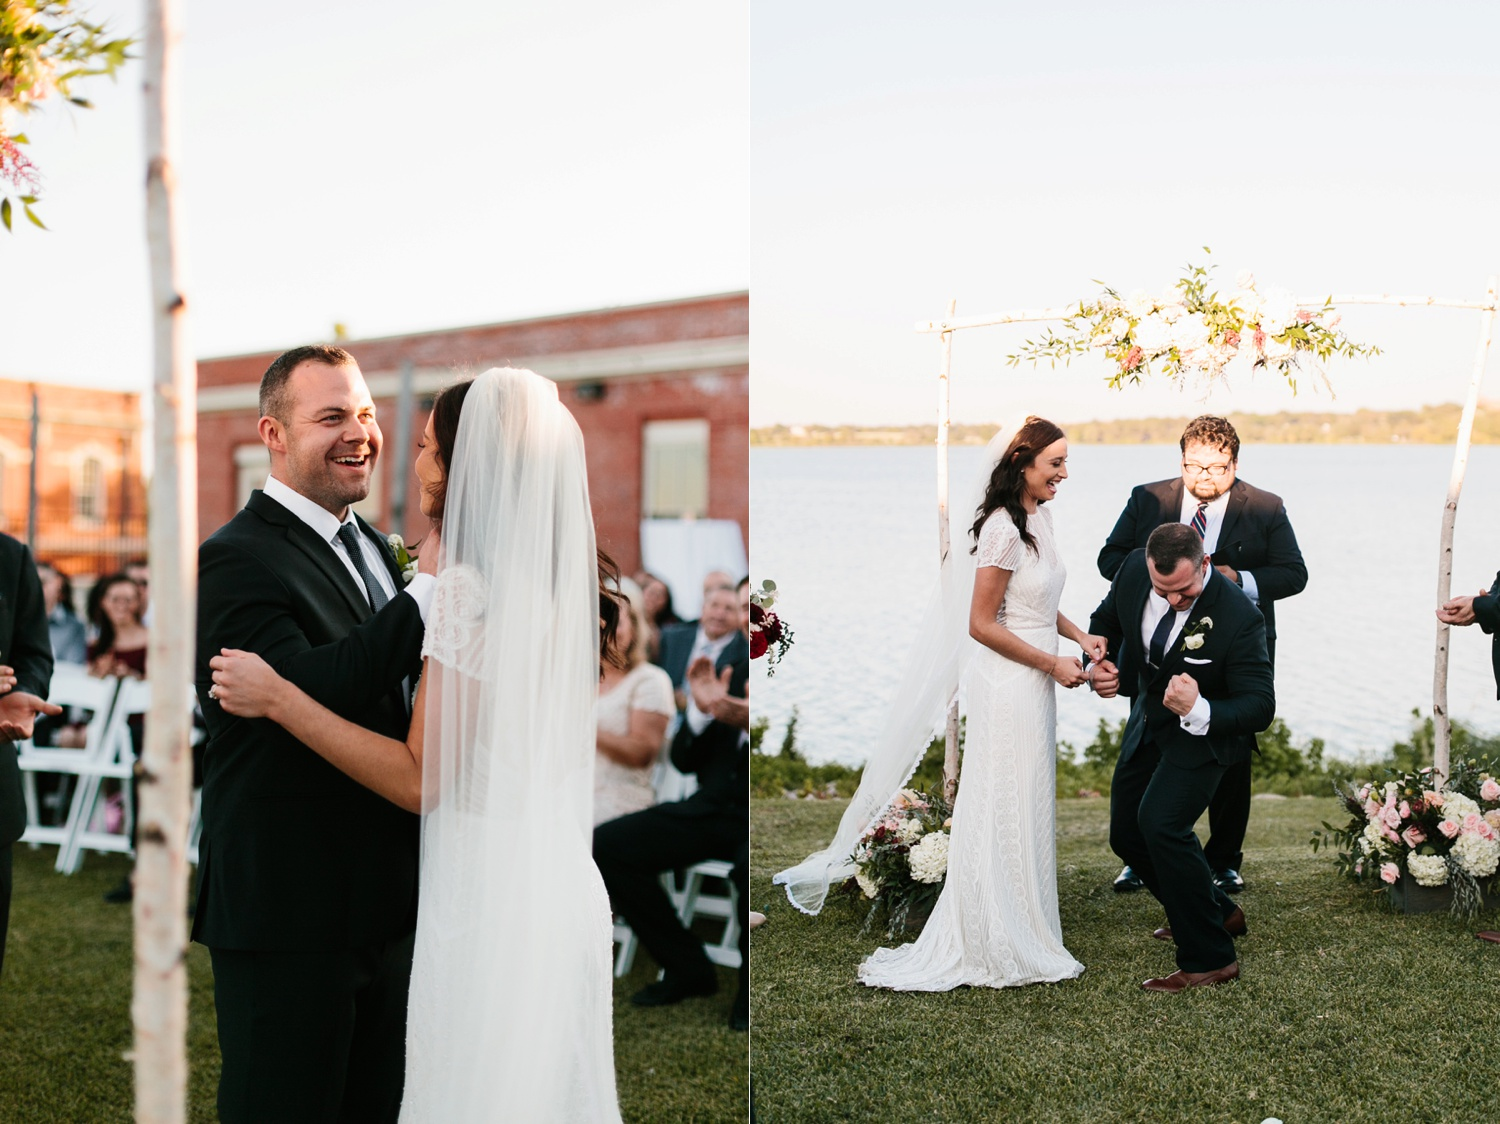 Kadee + Tyler | a raw, emotional wedding at the Filter Building on White Rock Lake in Dallas, TX by North Texas Wedding Photographer, Rachel Meagan Photography 147